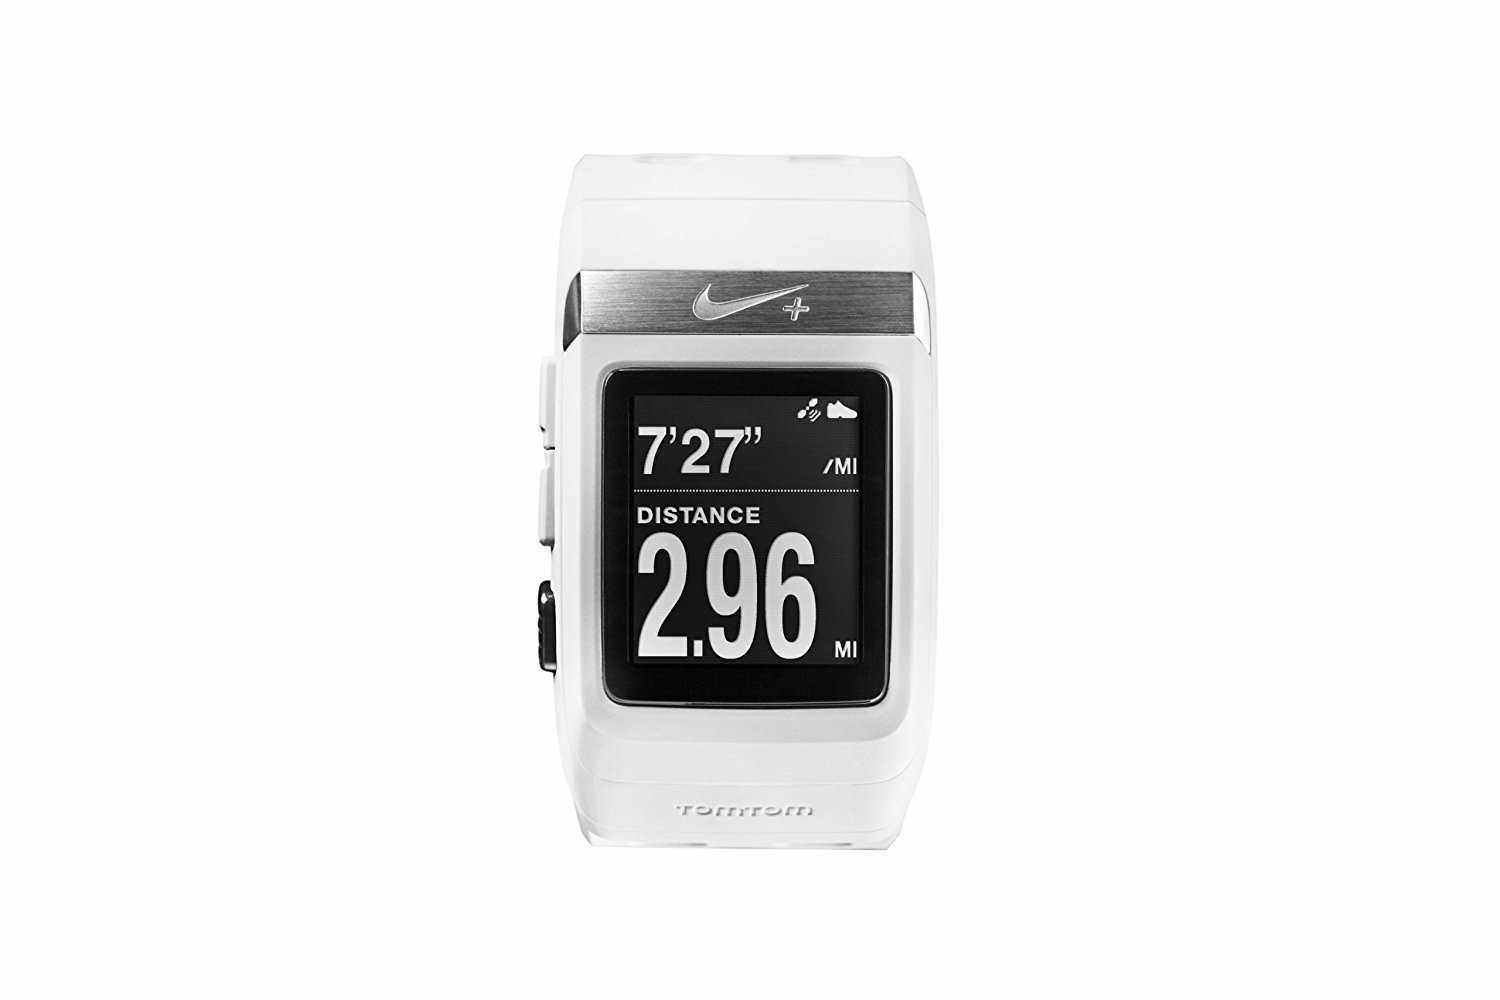 tomtom nike sportwatch gps comparatif montre plus de 50 r f rences pour bien choisir. Black Bedroom Furniture Sets. Home Design Ideas